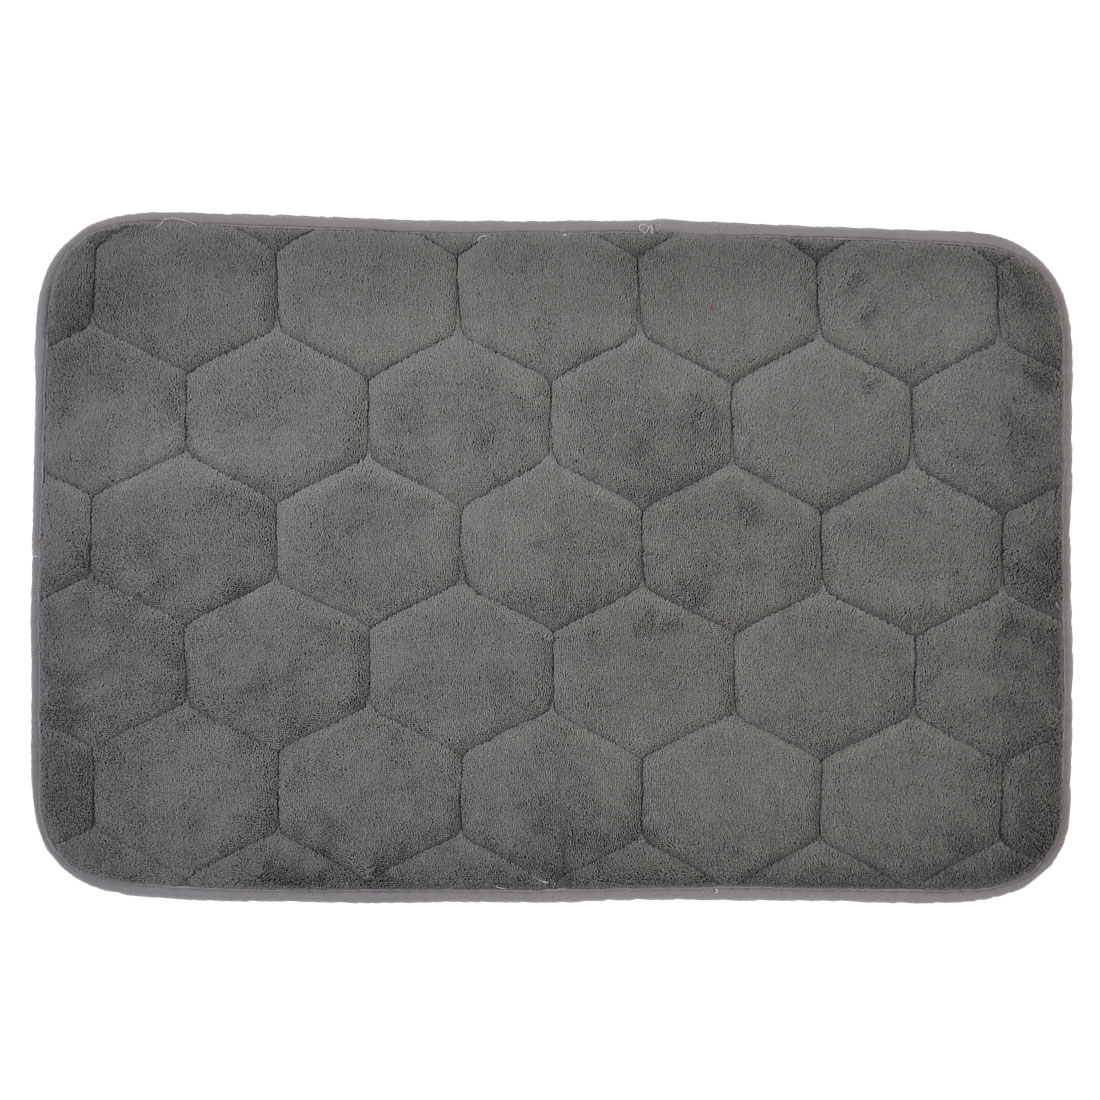 59cm x 40cm Gray Polyester Hexagon Pattern Absorbent Slip-resistant Shower Rug